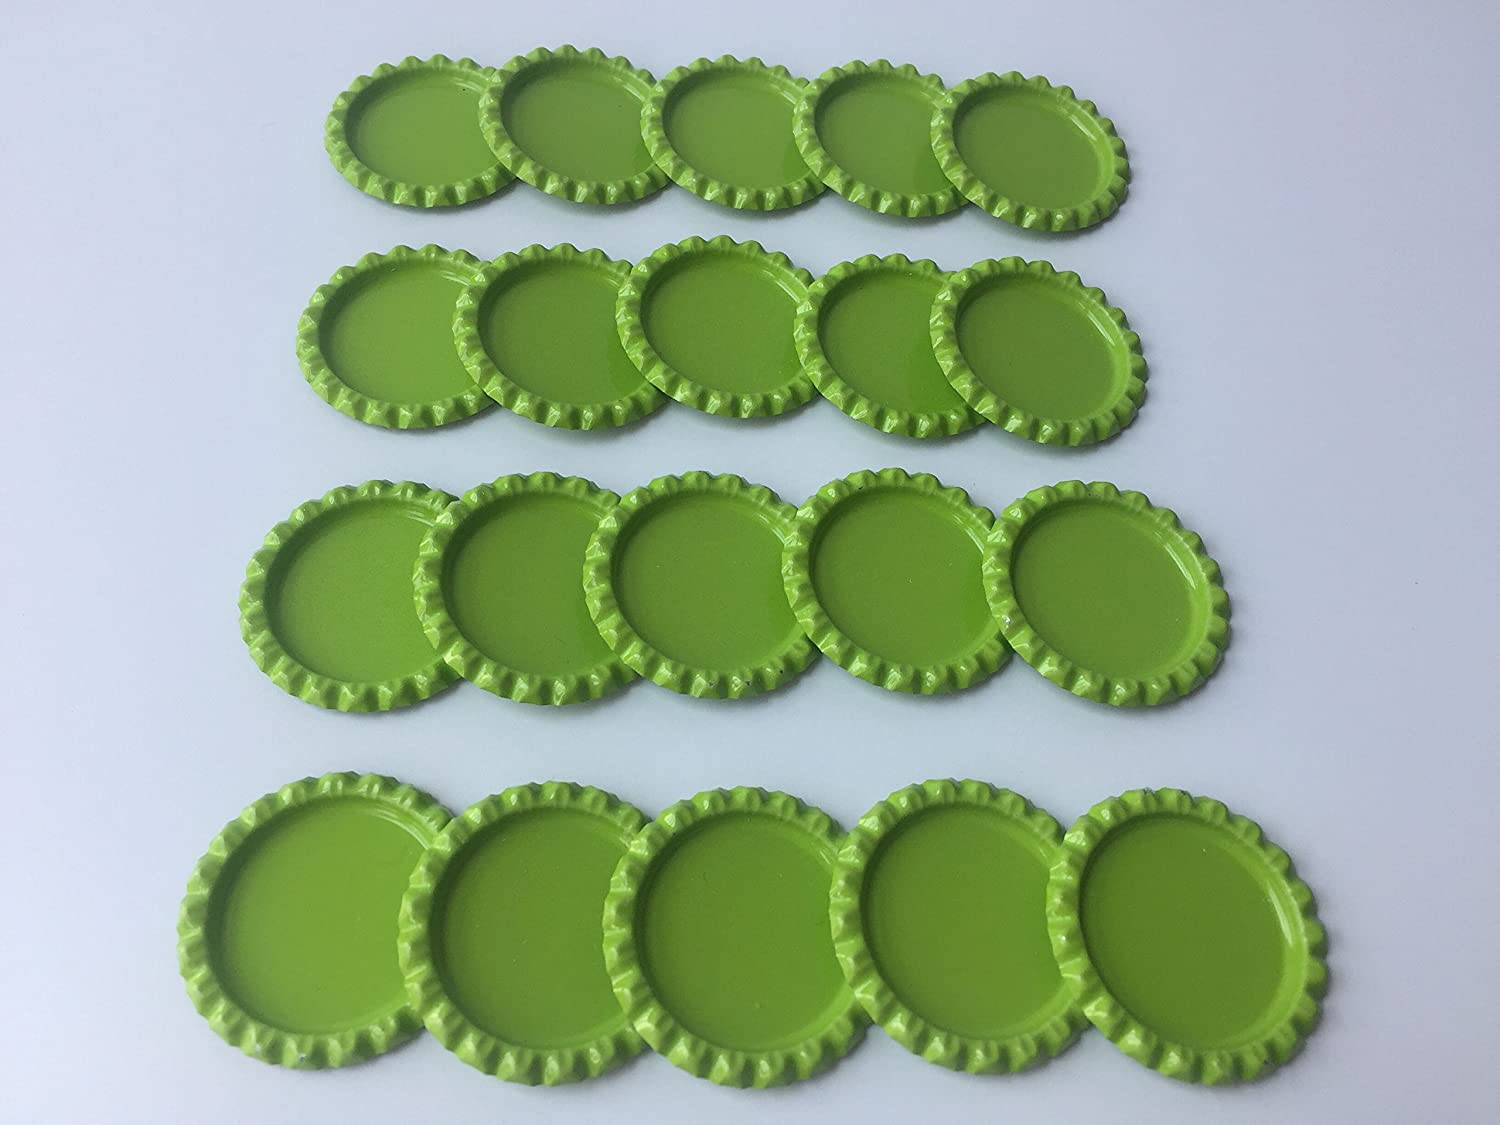 DIY Pendants or Craft ScraPbooks Mixed Colors HAWORTHS 100 PCS Flat Decorative Bottle CaP Craft Bottle Stickers Double Sideds Printed for Hair Bows 10colors